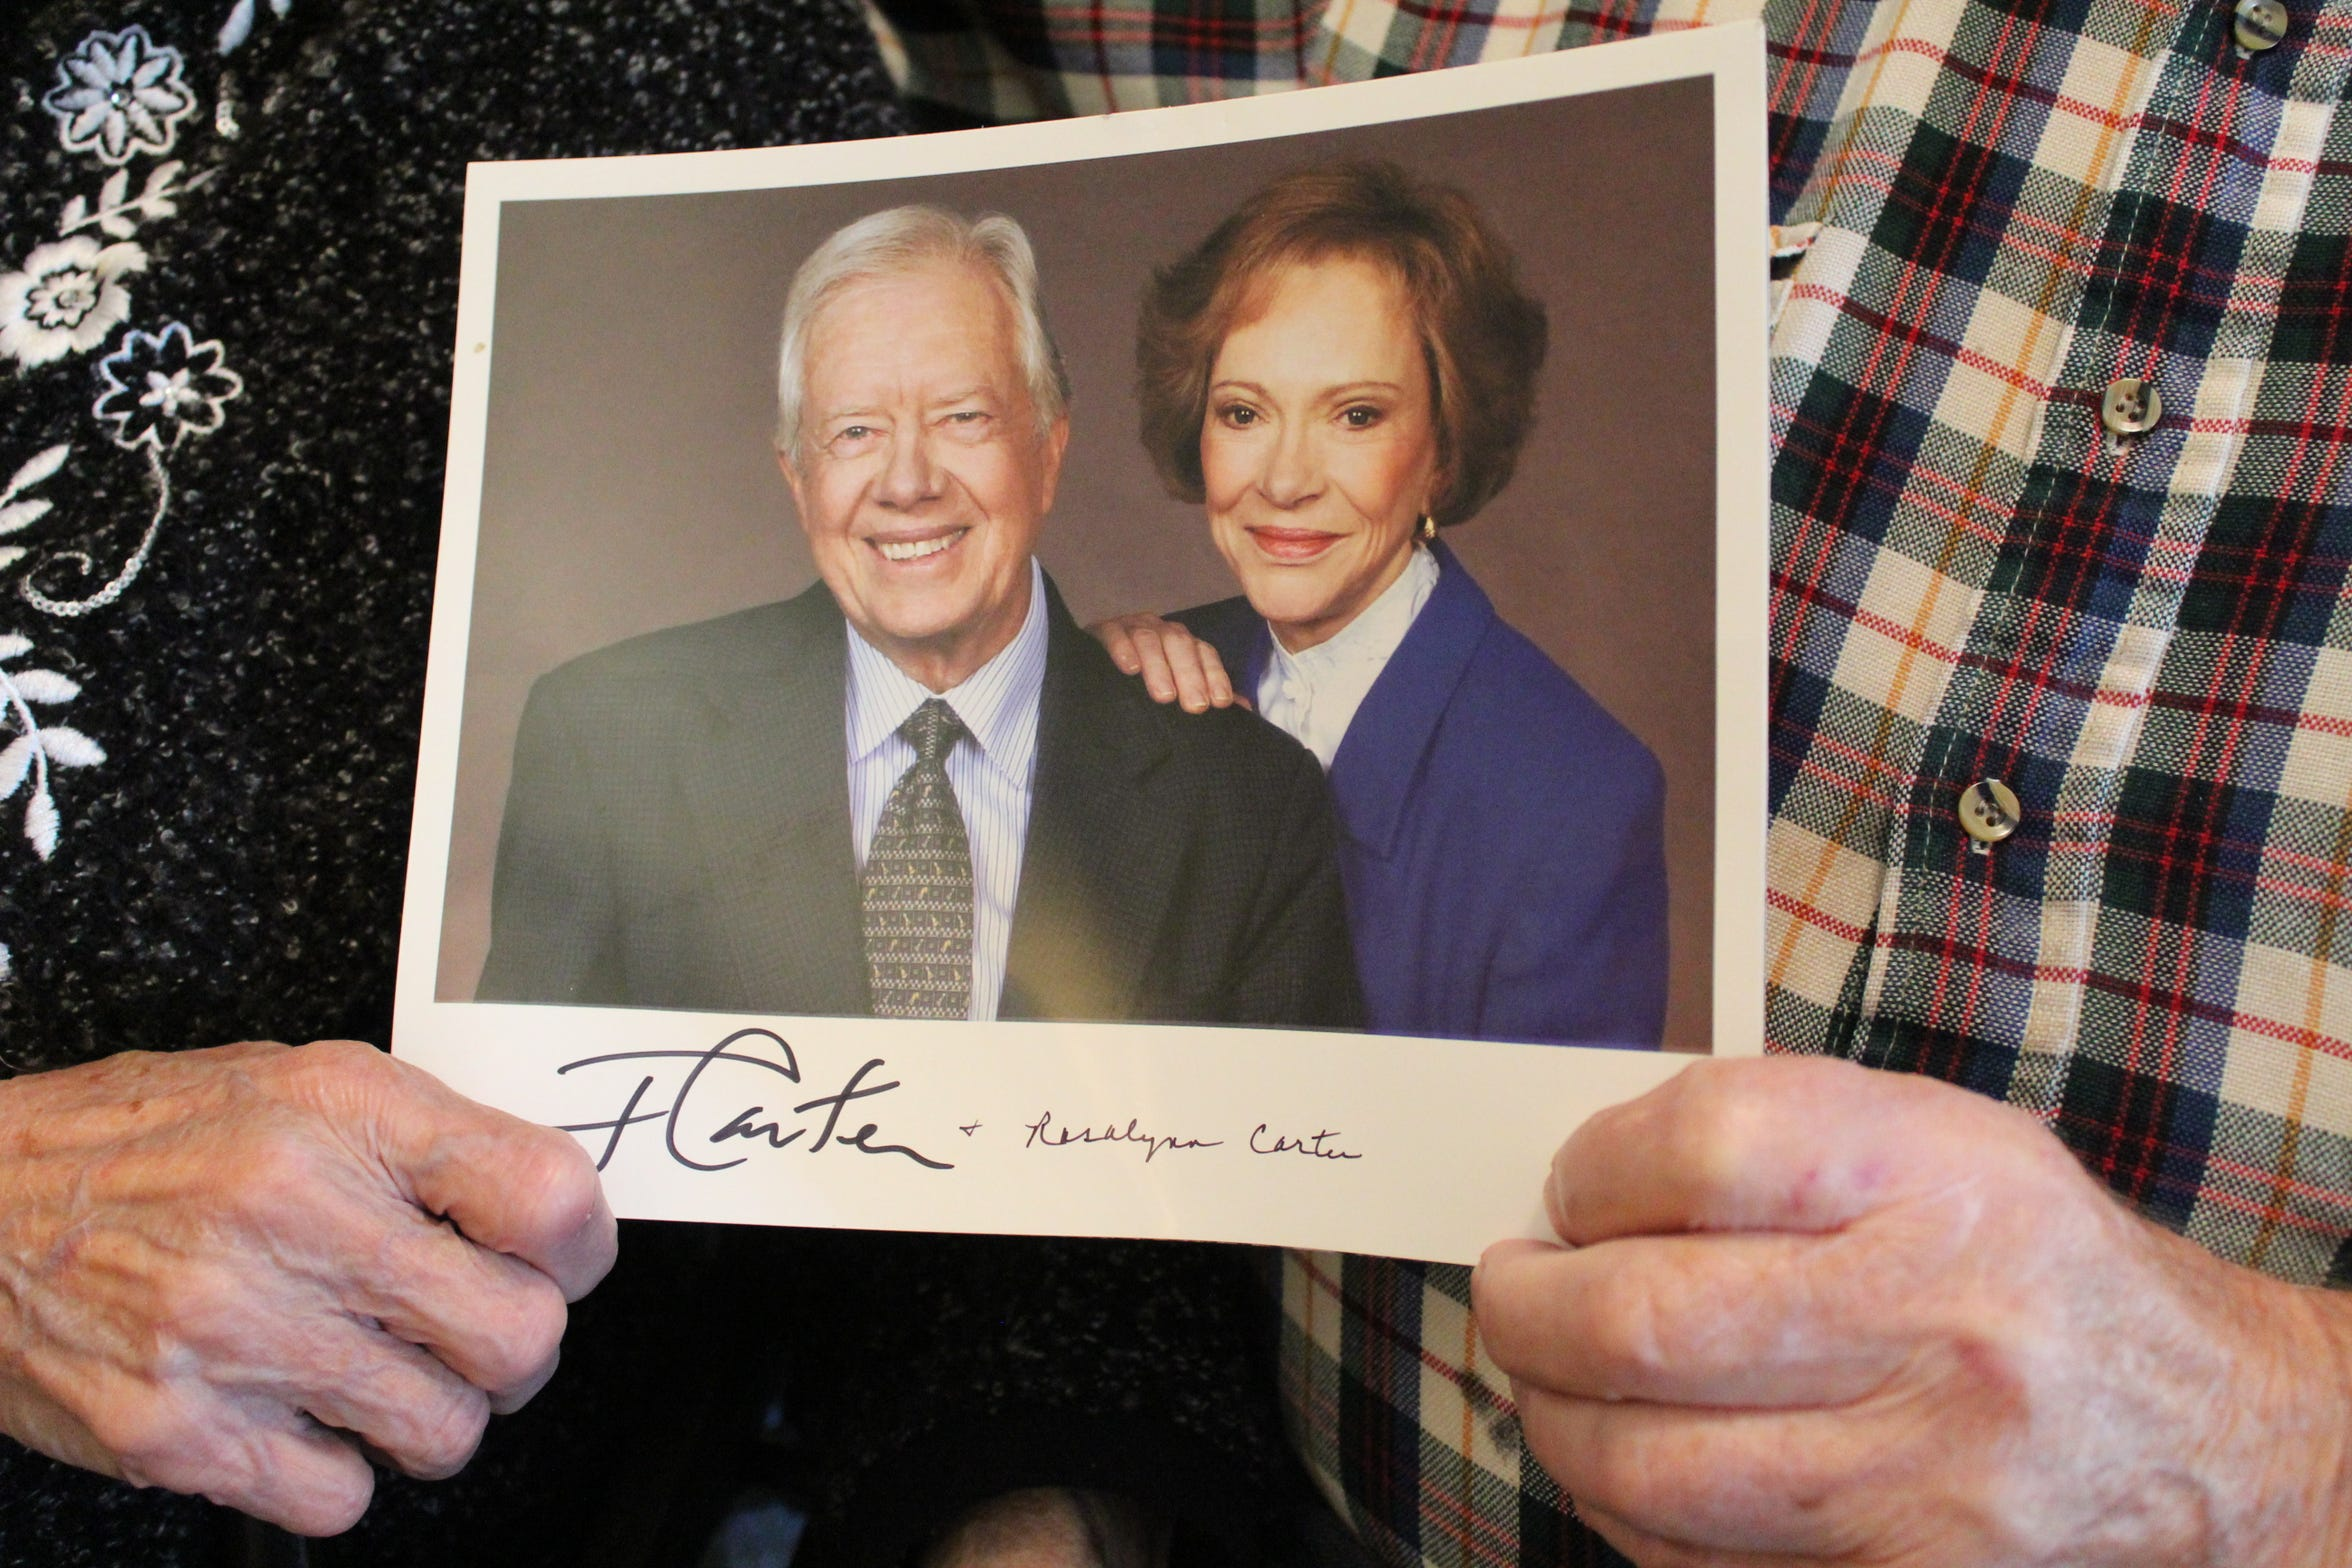 Betty and Calvin Haar of Elmore hold an autographed photo they received from former President Jimmy Carter and his wife, Rosalynn.